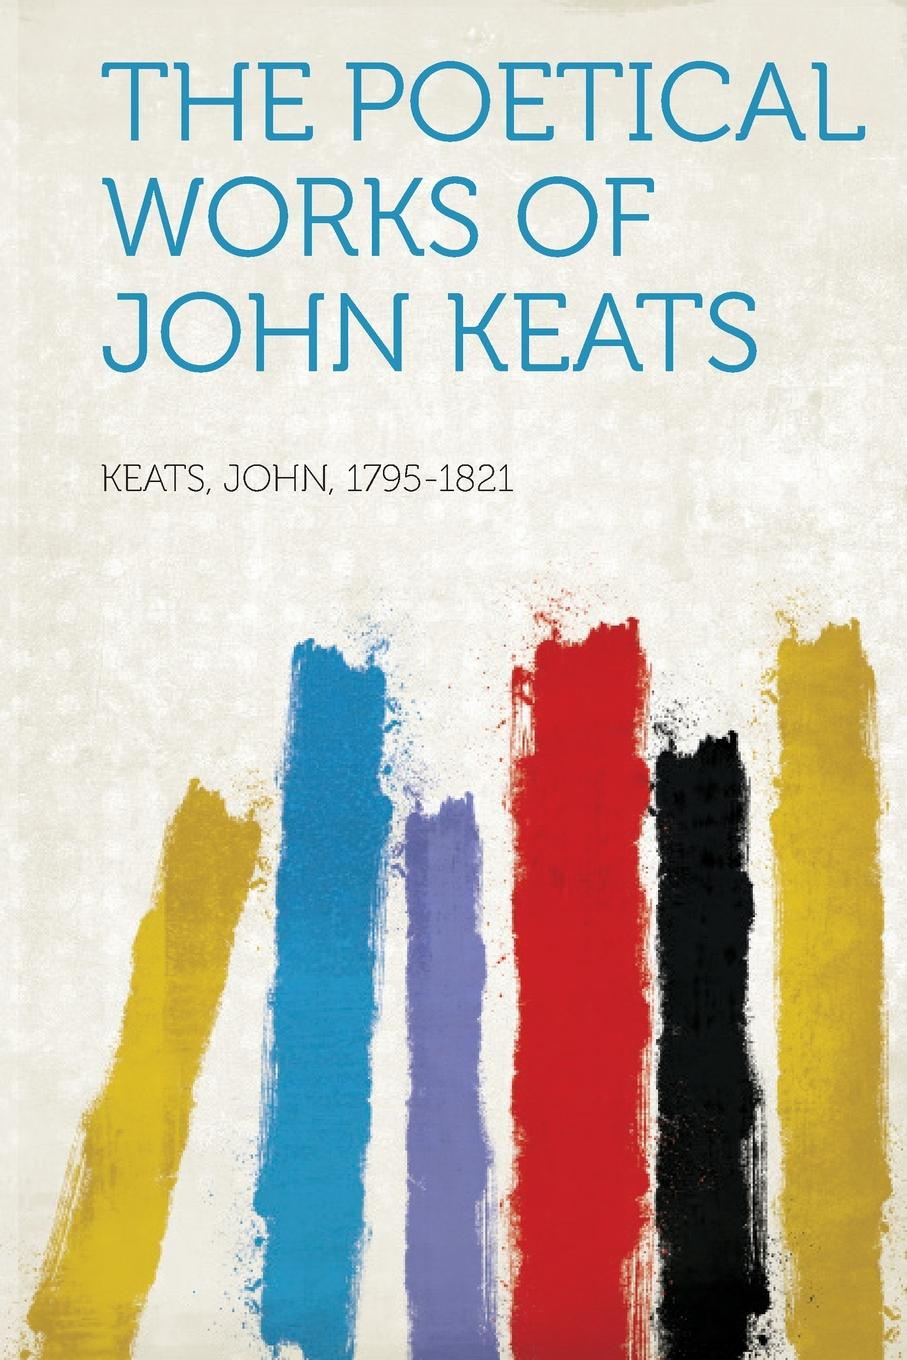 Keats John 1795-1821 The Poetical Works of John Keats other keats